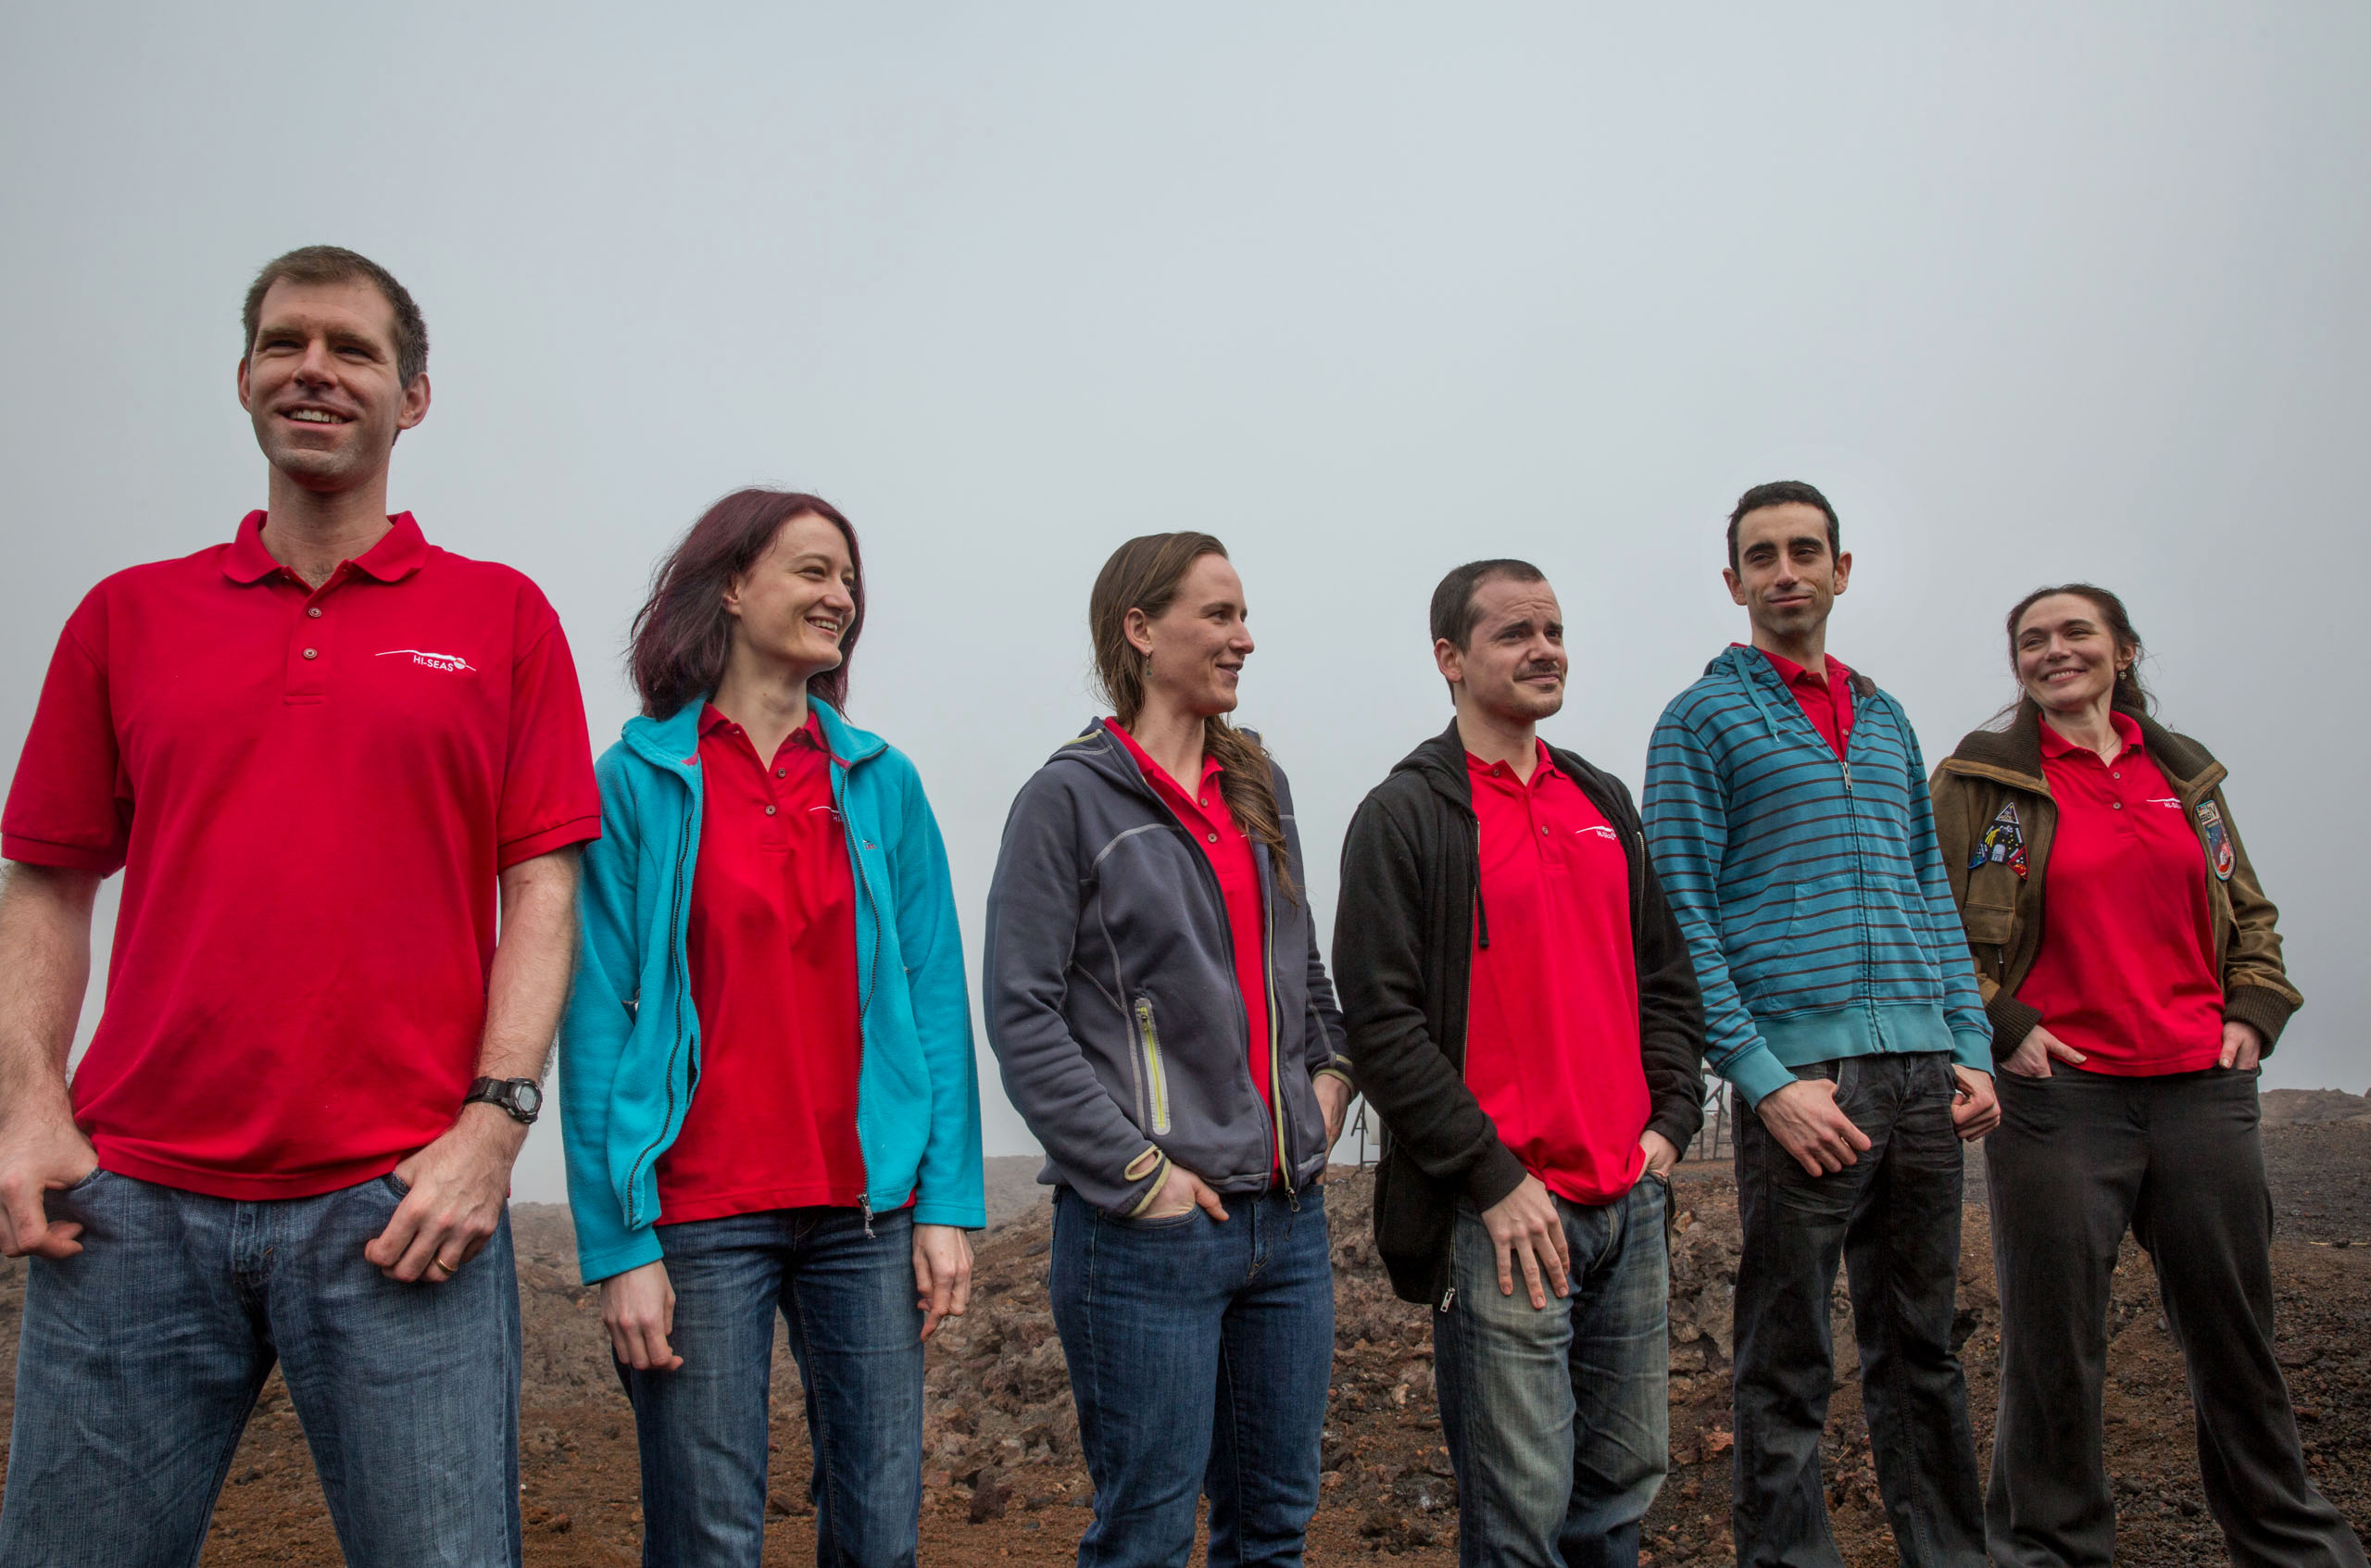 The HI-SEAS Mission 4 crew after returning from 365 days in isolation on Aug. 28, 2016. From left to right: Andrzej Stewart, Christiane Heinicke, Carmel Johnston, Tristan Bassingthwaighte, Cyprien Verseux, Sheyna Gifford.